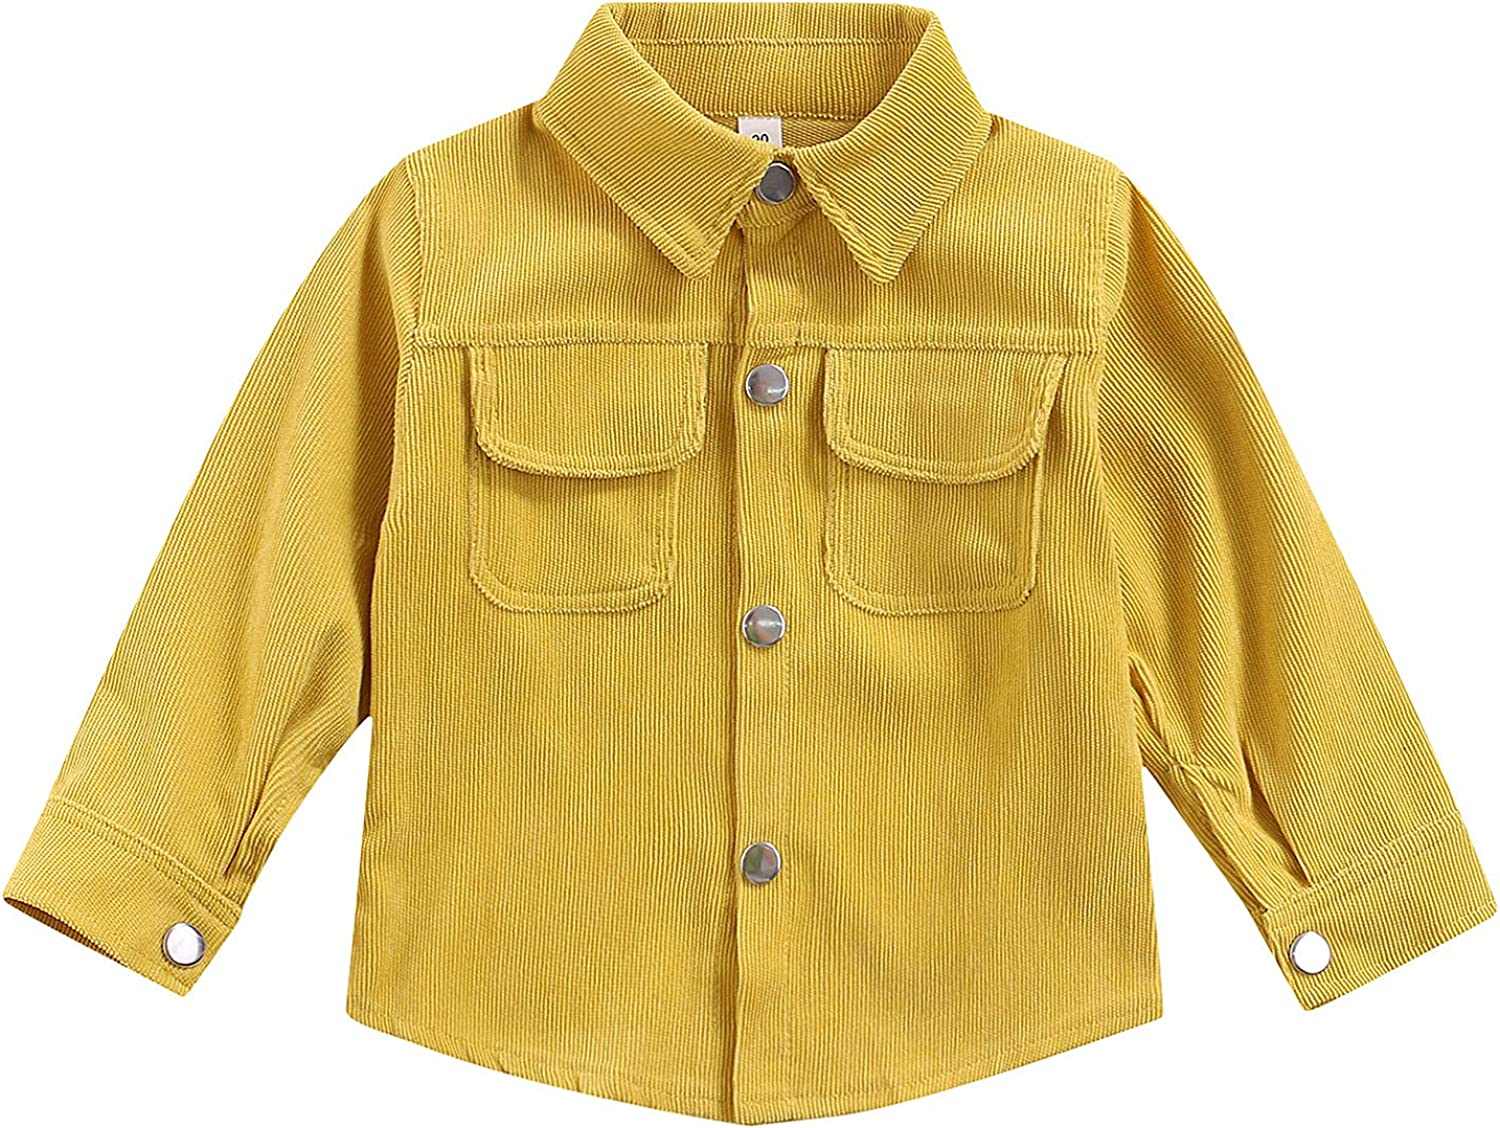 Toddler Boys Girls Outifits Button Baby Max 88% OFF Free Shipping Cheap Bargain Gift Coat Unisex Jacket Down